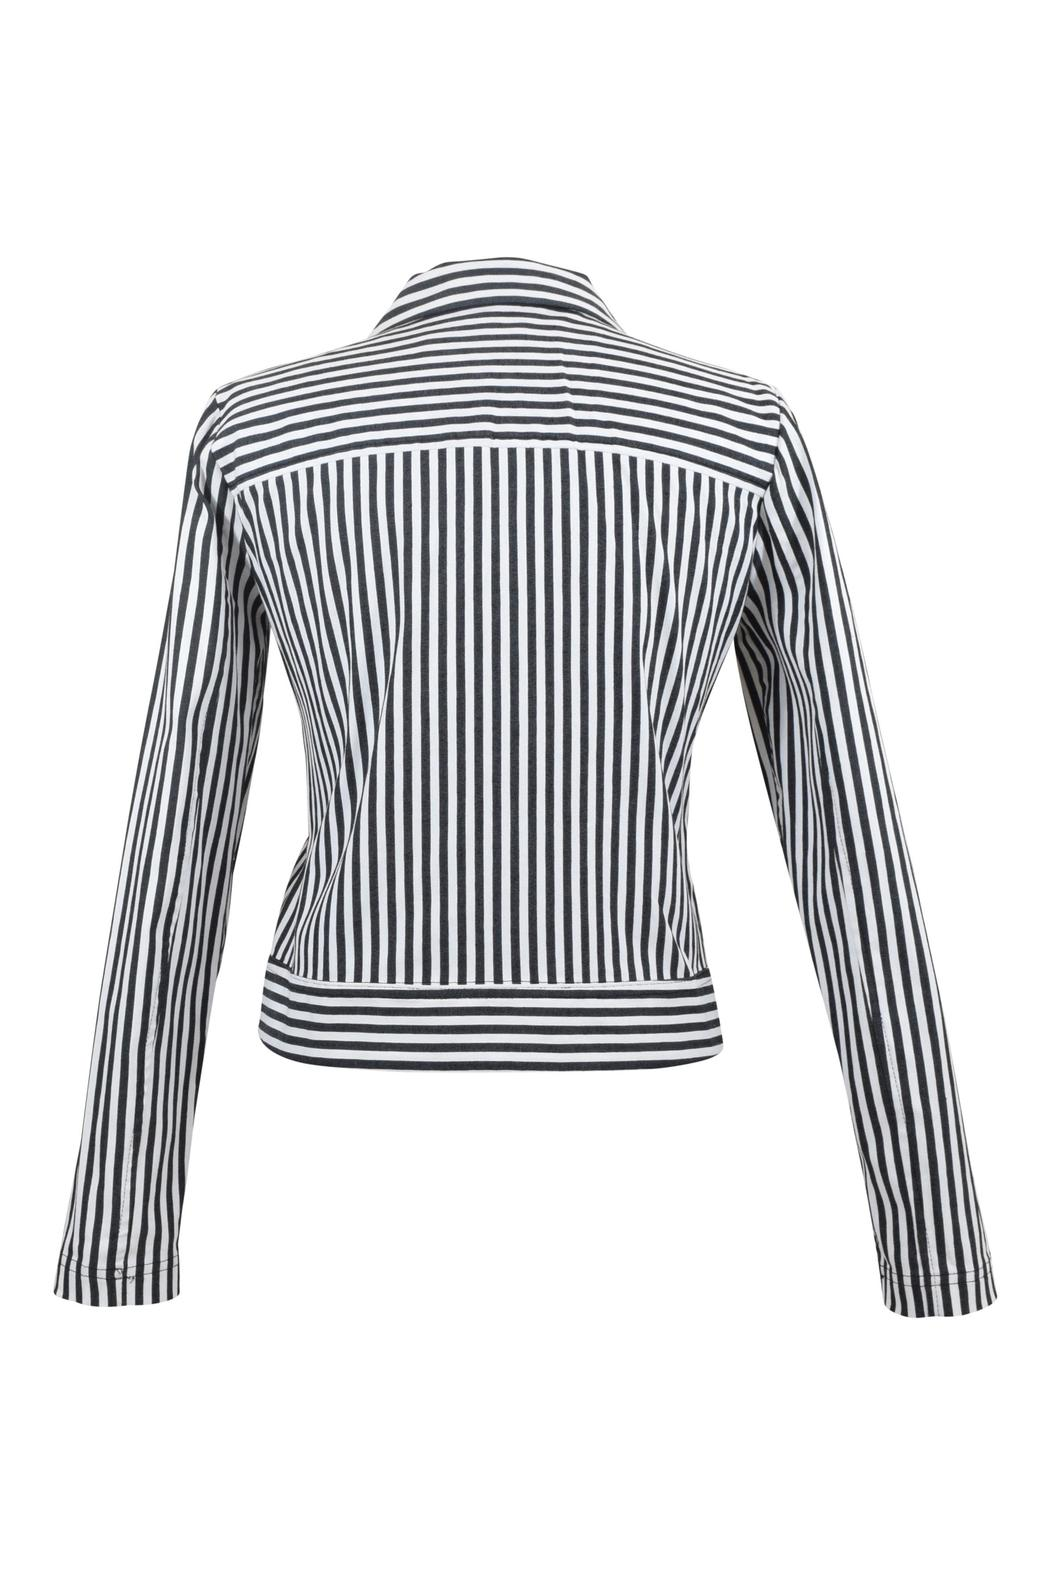 Eric Alexandre Striped Cotton Jacket - Front Full Image